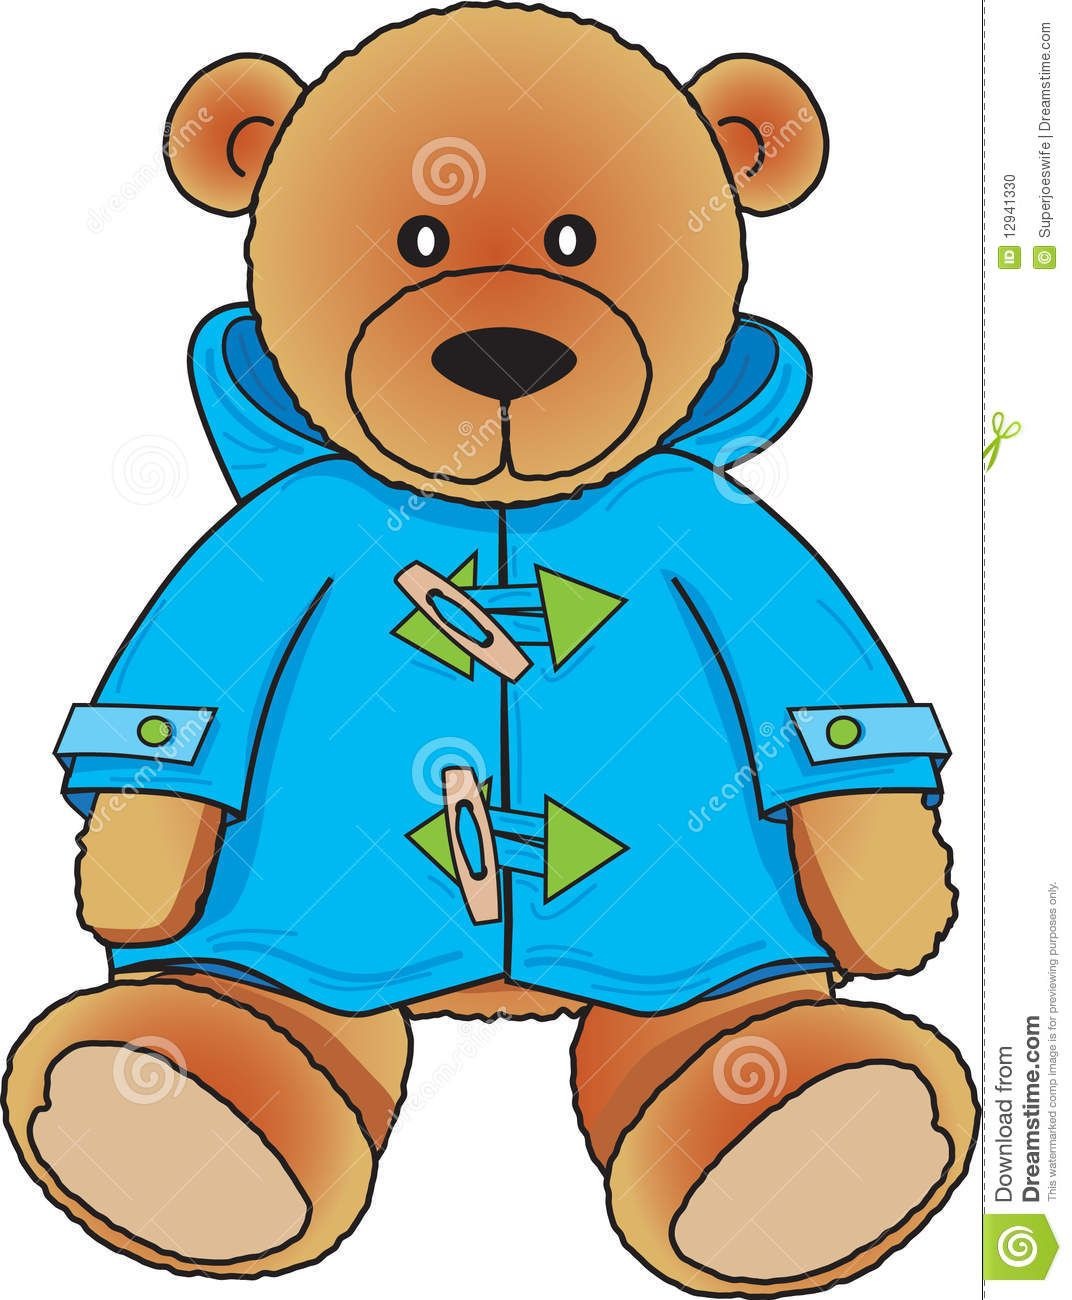 cute colors clipart | Stock Photo: Teddy Bear in blue coat | Cute ...